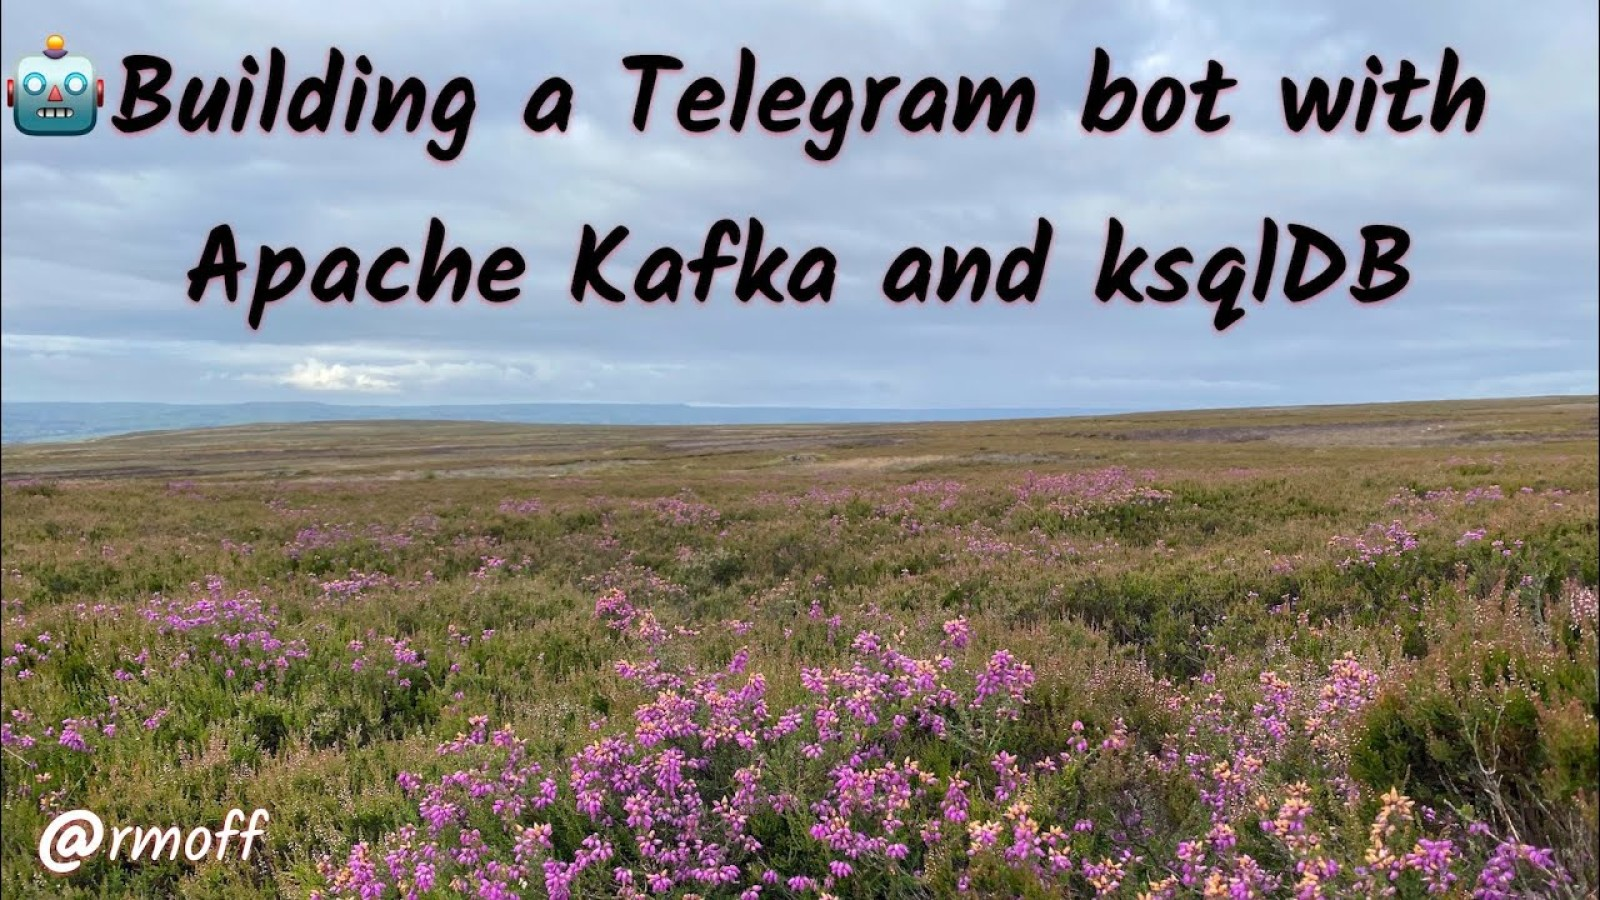 🤖 Building a Telegram bot with Apache Kafka, Go, and ksqlDB